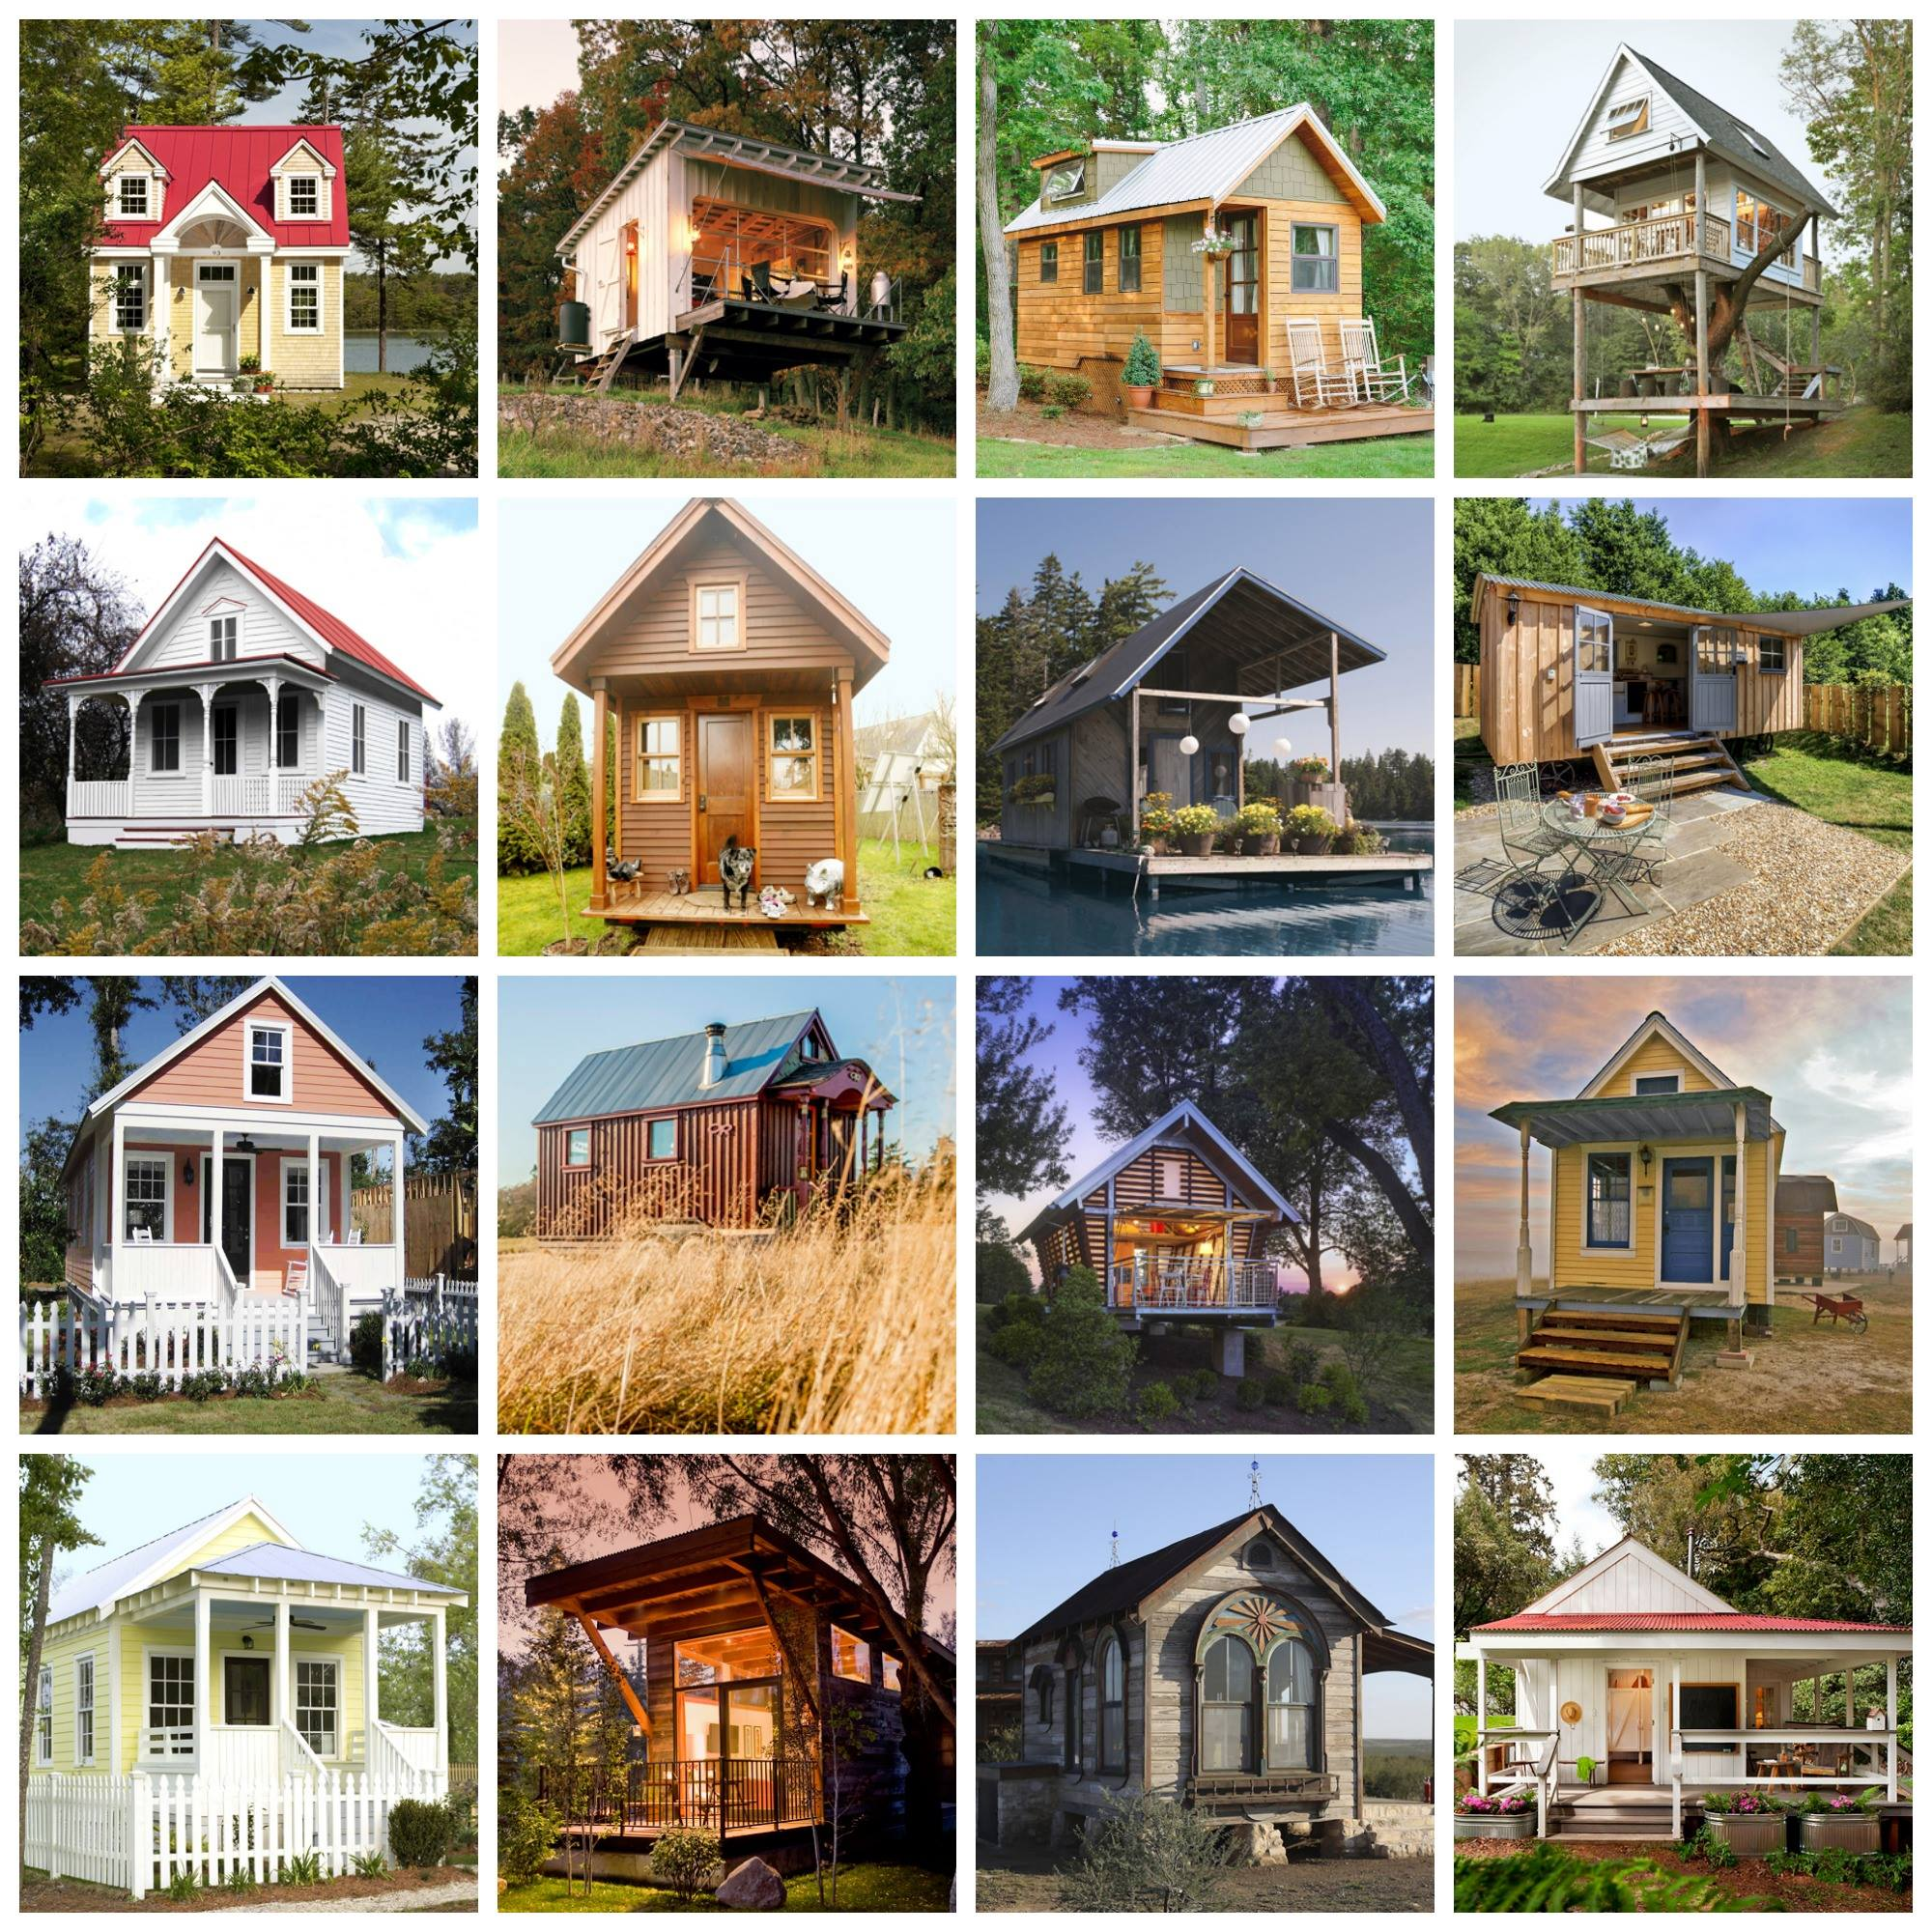 pleasing kc home and garden show. What We Need TINY HOUSE COLLECTIVE KANSAS CITY  Indiegogo